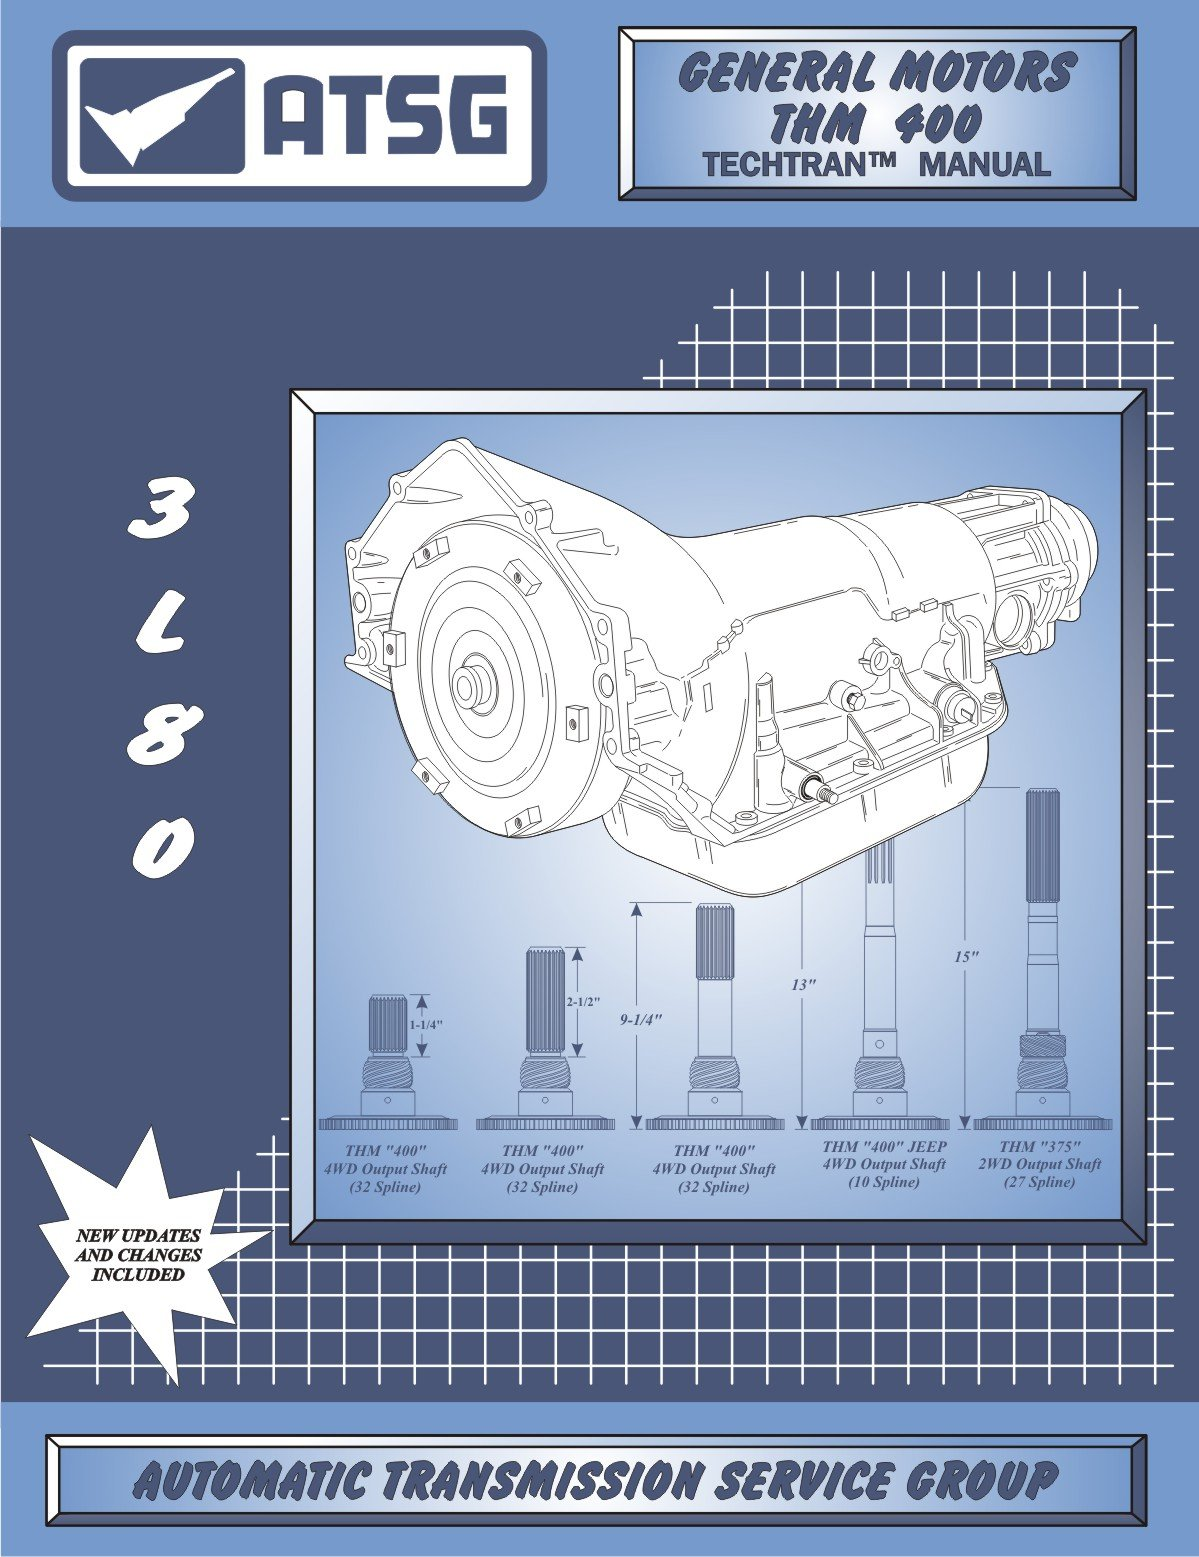 thm 400 techtran manual atsg automatic transmission service group